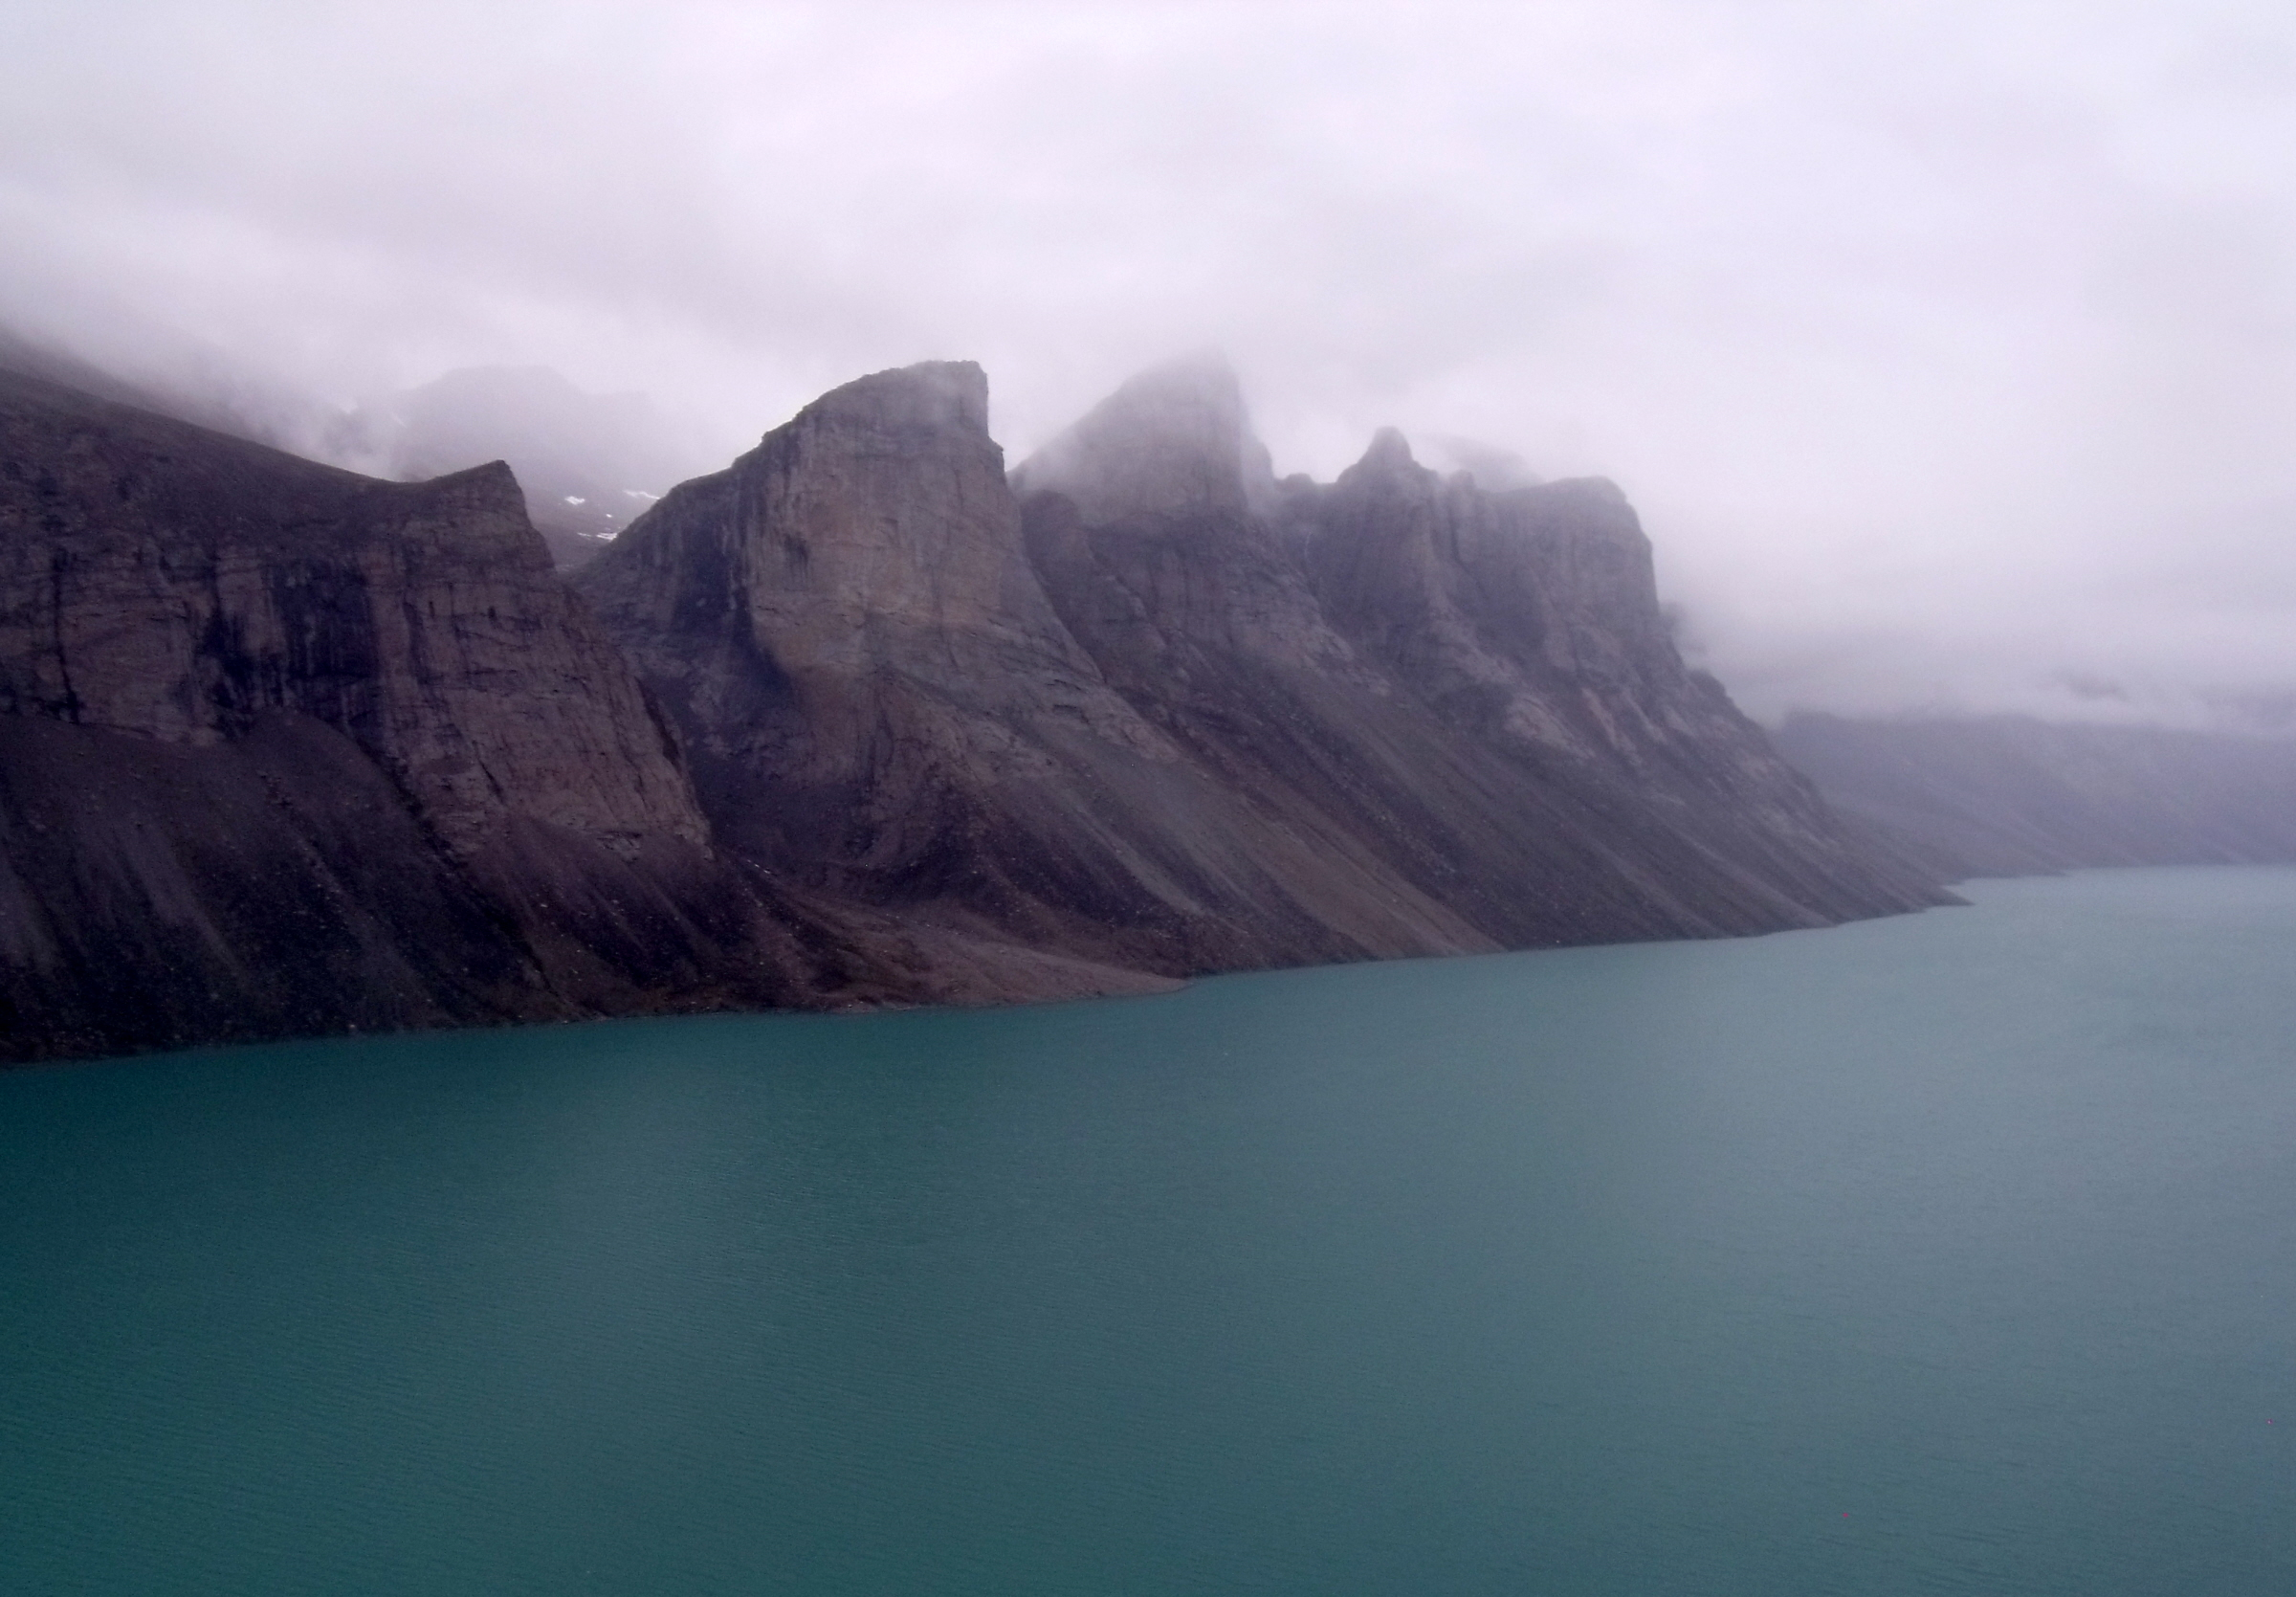 Land-locked freshwater fiord in northern Baffin Island, Nunavut with mile high teeth in the fog. Taken across Ayr Lake from a helicopter returning through the 'back door' to the hamlet of Clyde River. Photo by  Mike Beauregard